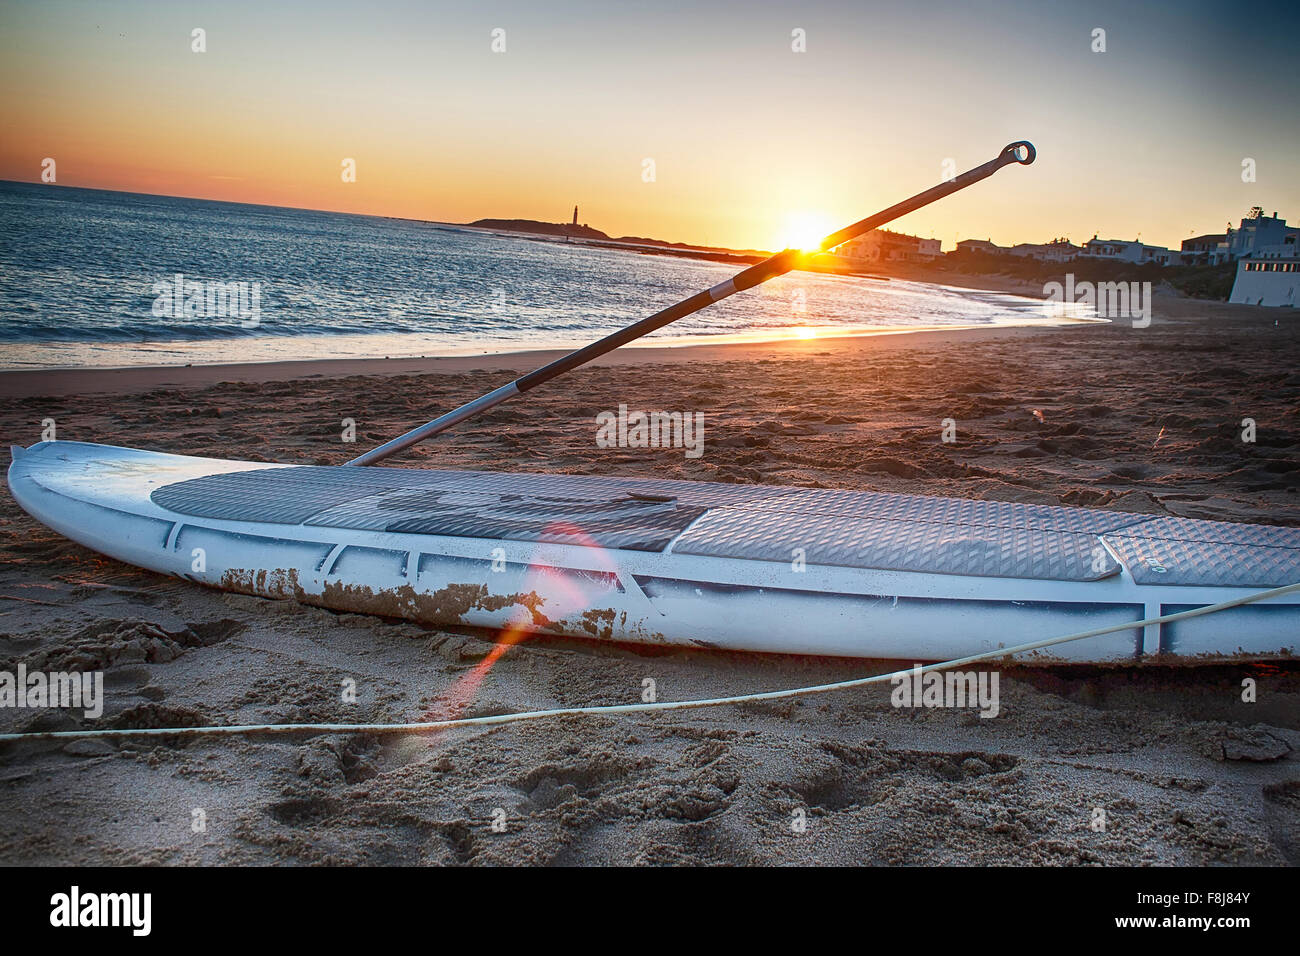 Paddle board on the sand at sunset. - Stock Image